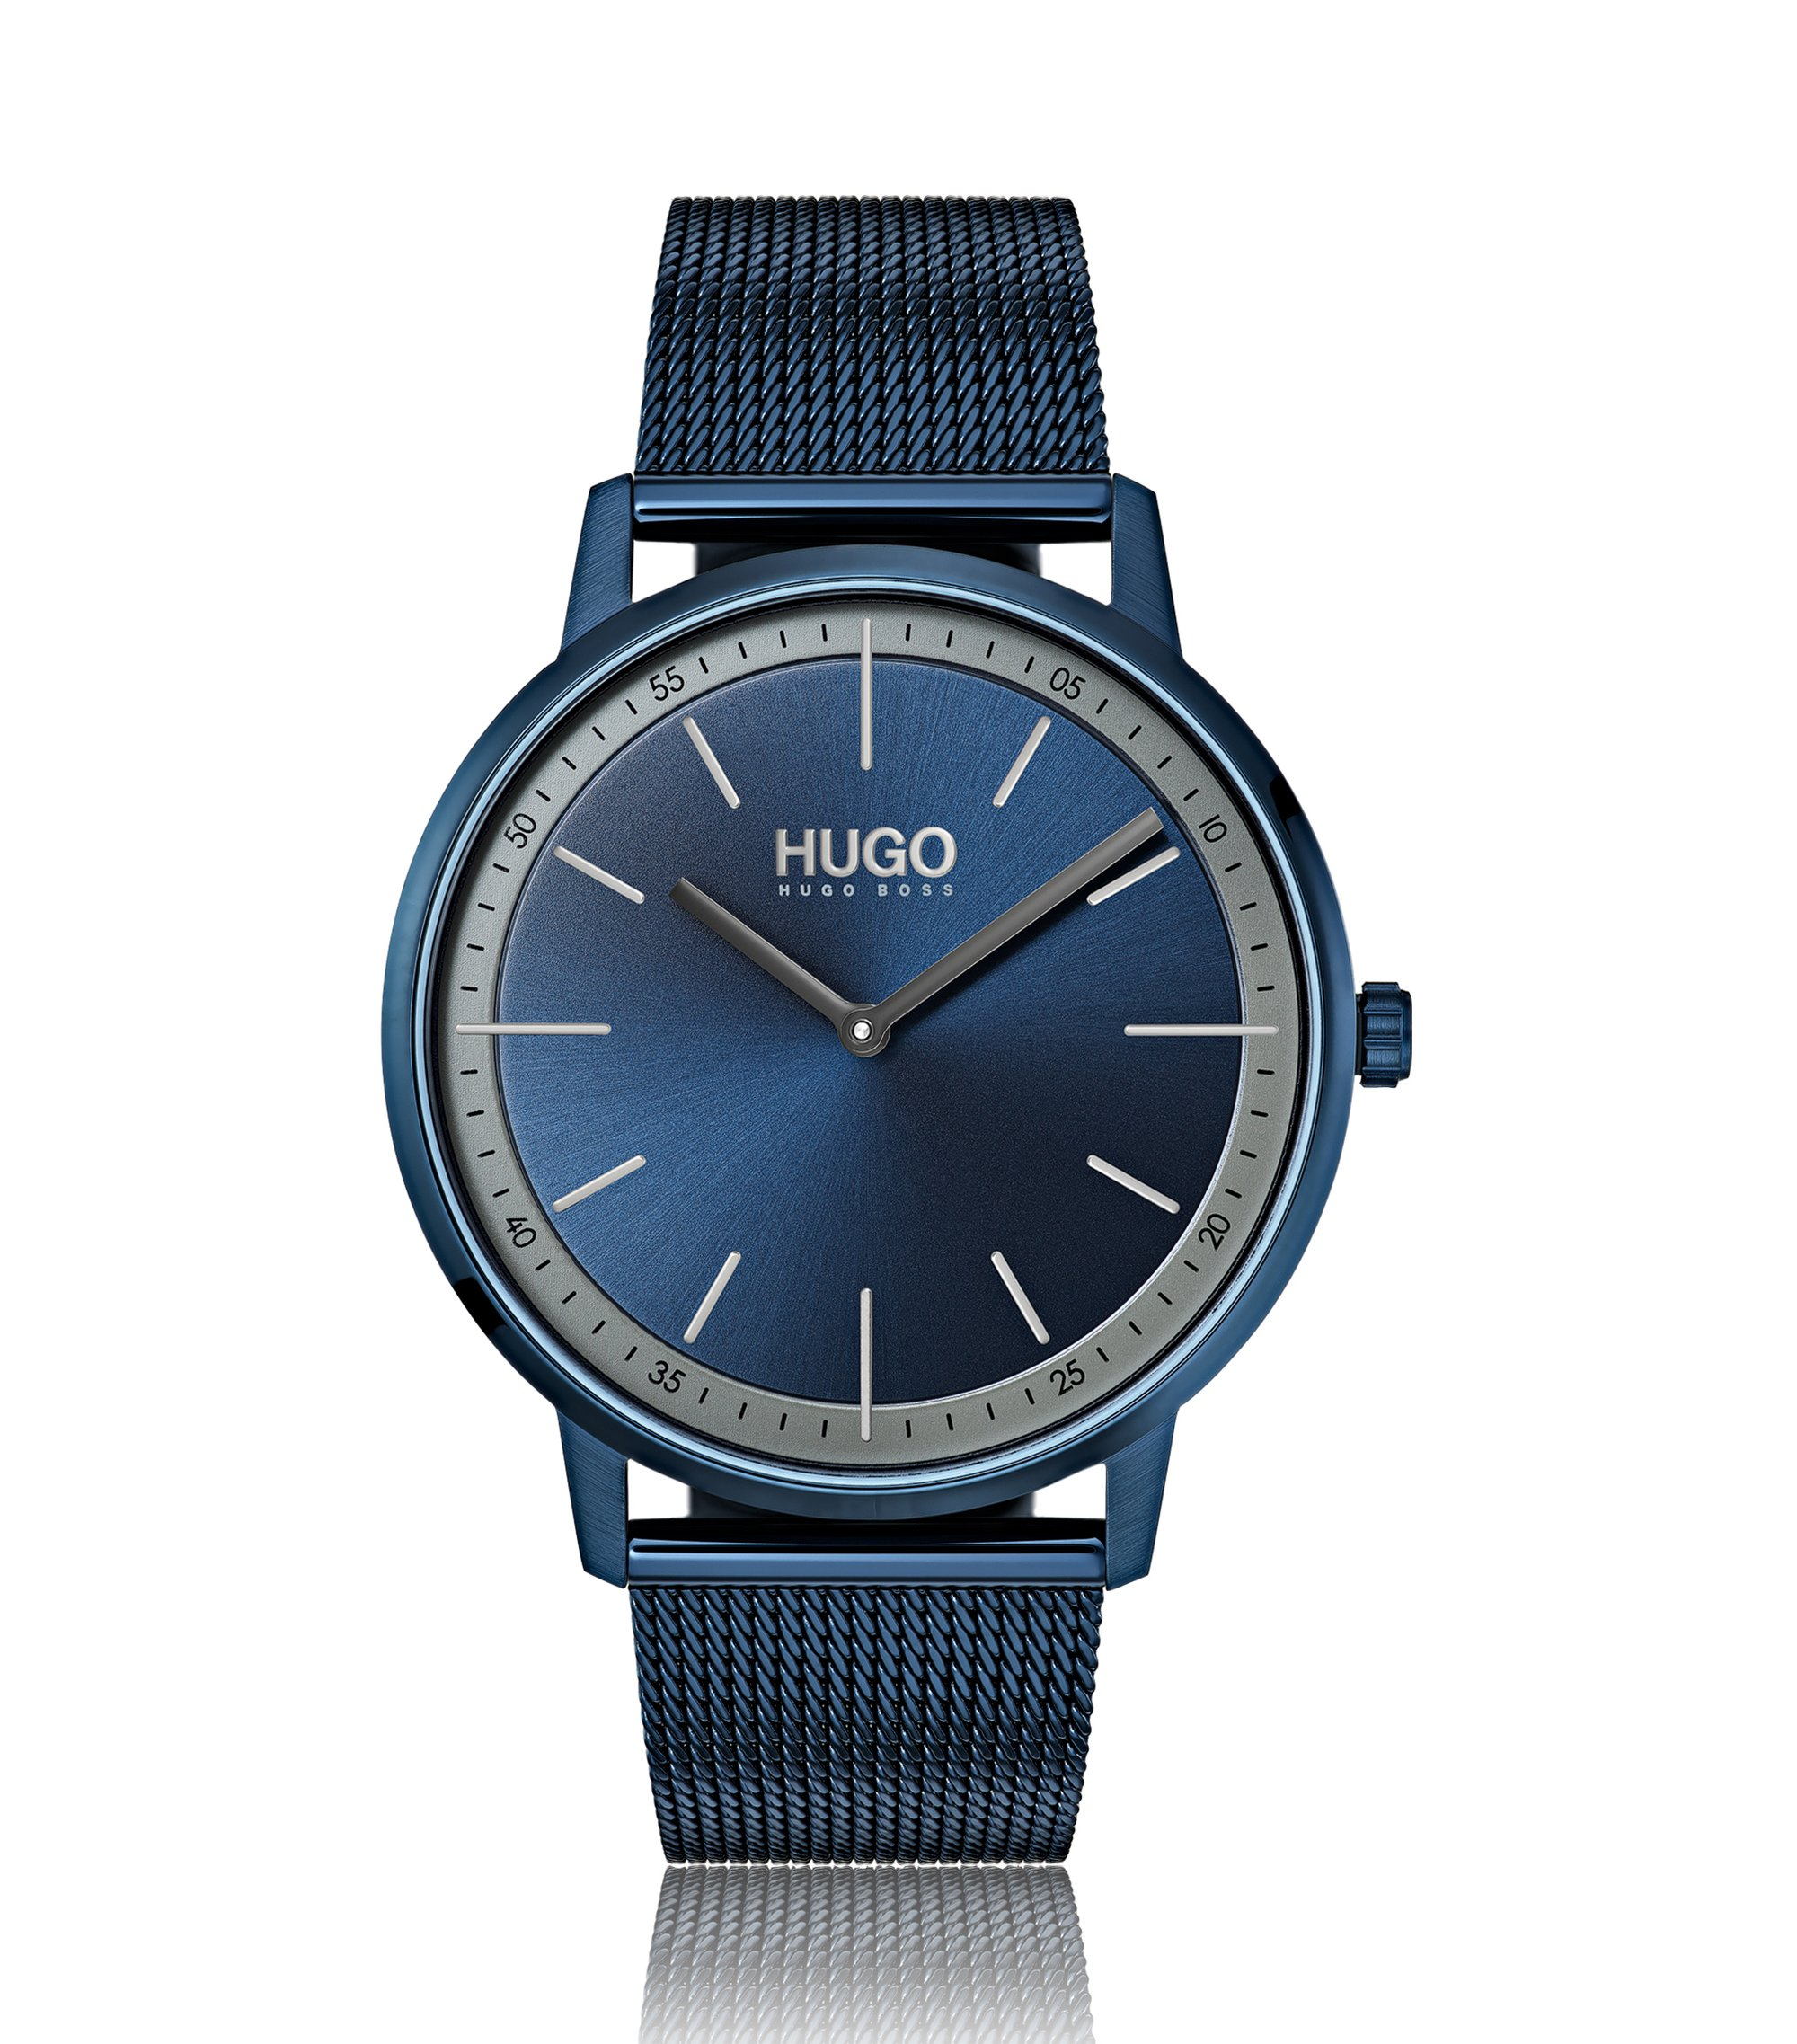 Unisex watch with blue mesh bracelet and dial, Blue